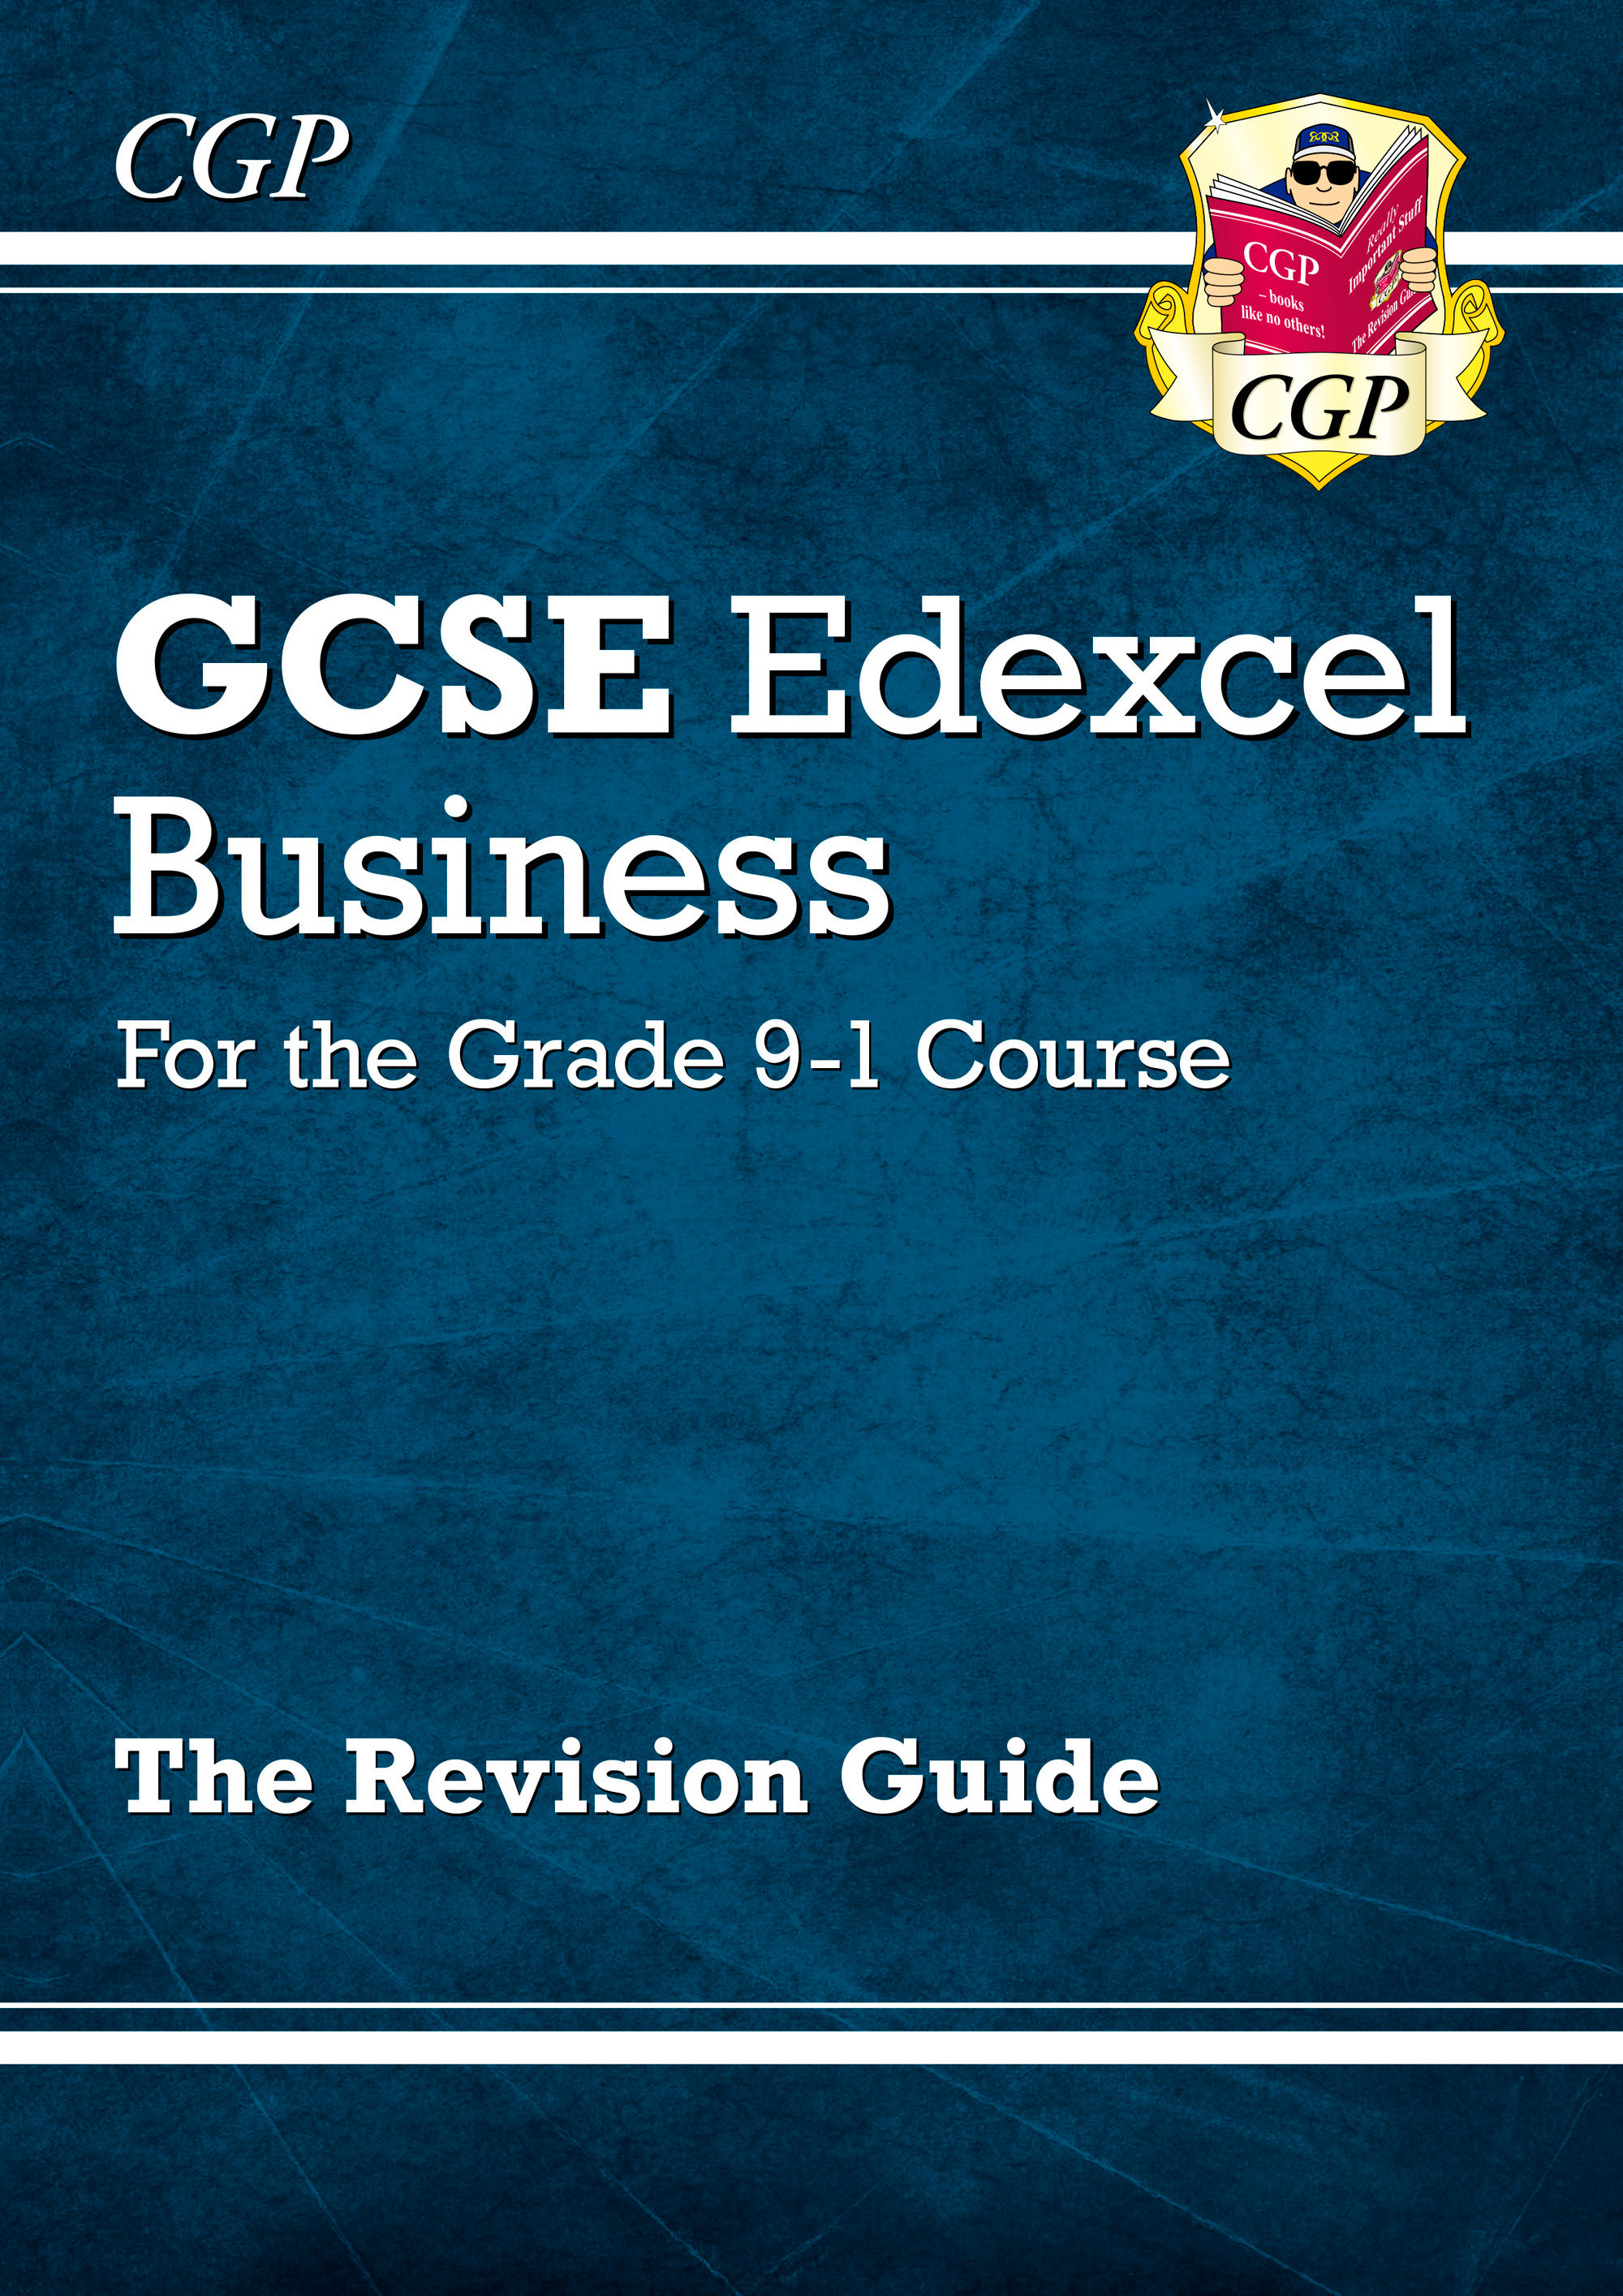 BUER41DK - New GCSE Business Edexcel Revision Guide - for the Grade 9-1 Course